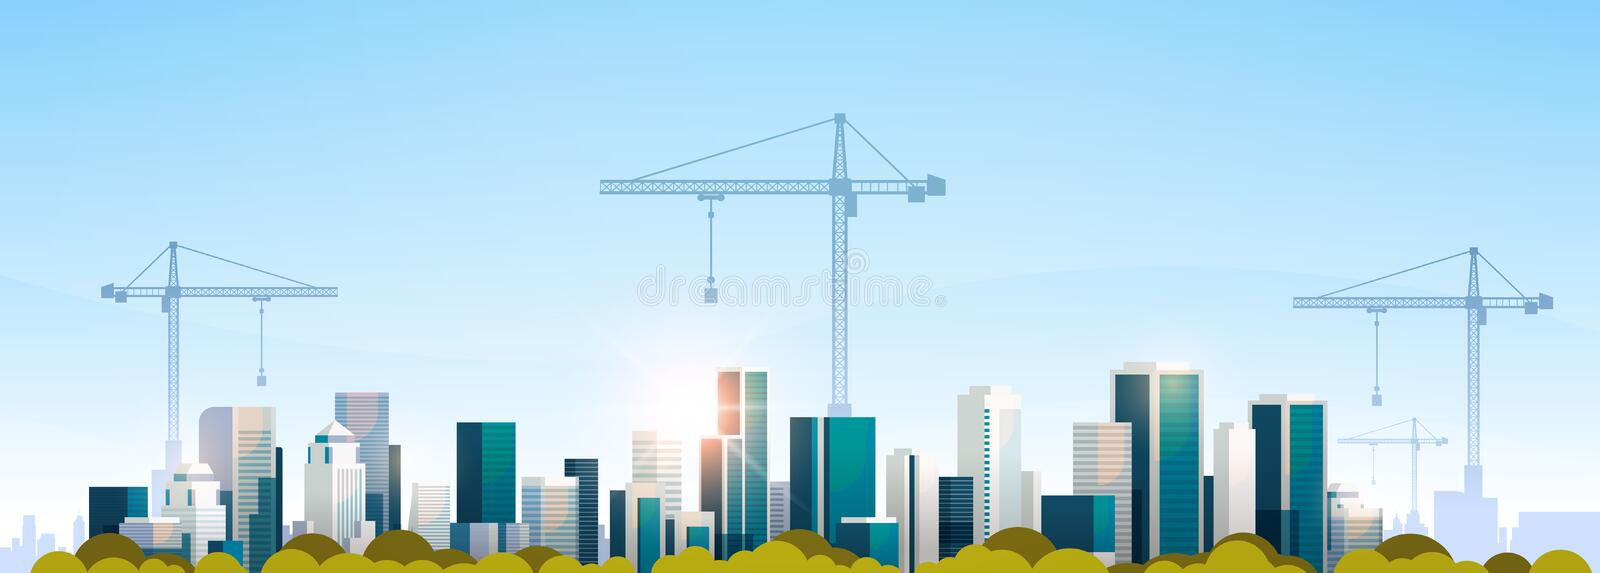 Modern city construction site tower cranes building residential buildings cityscape sunset skyline background flat stock illustration